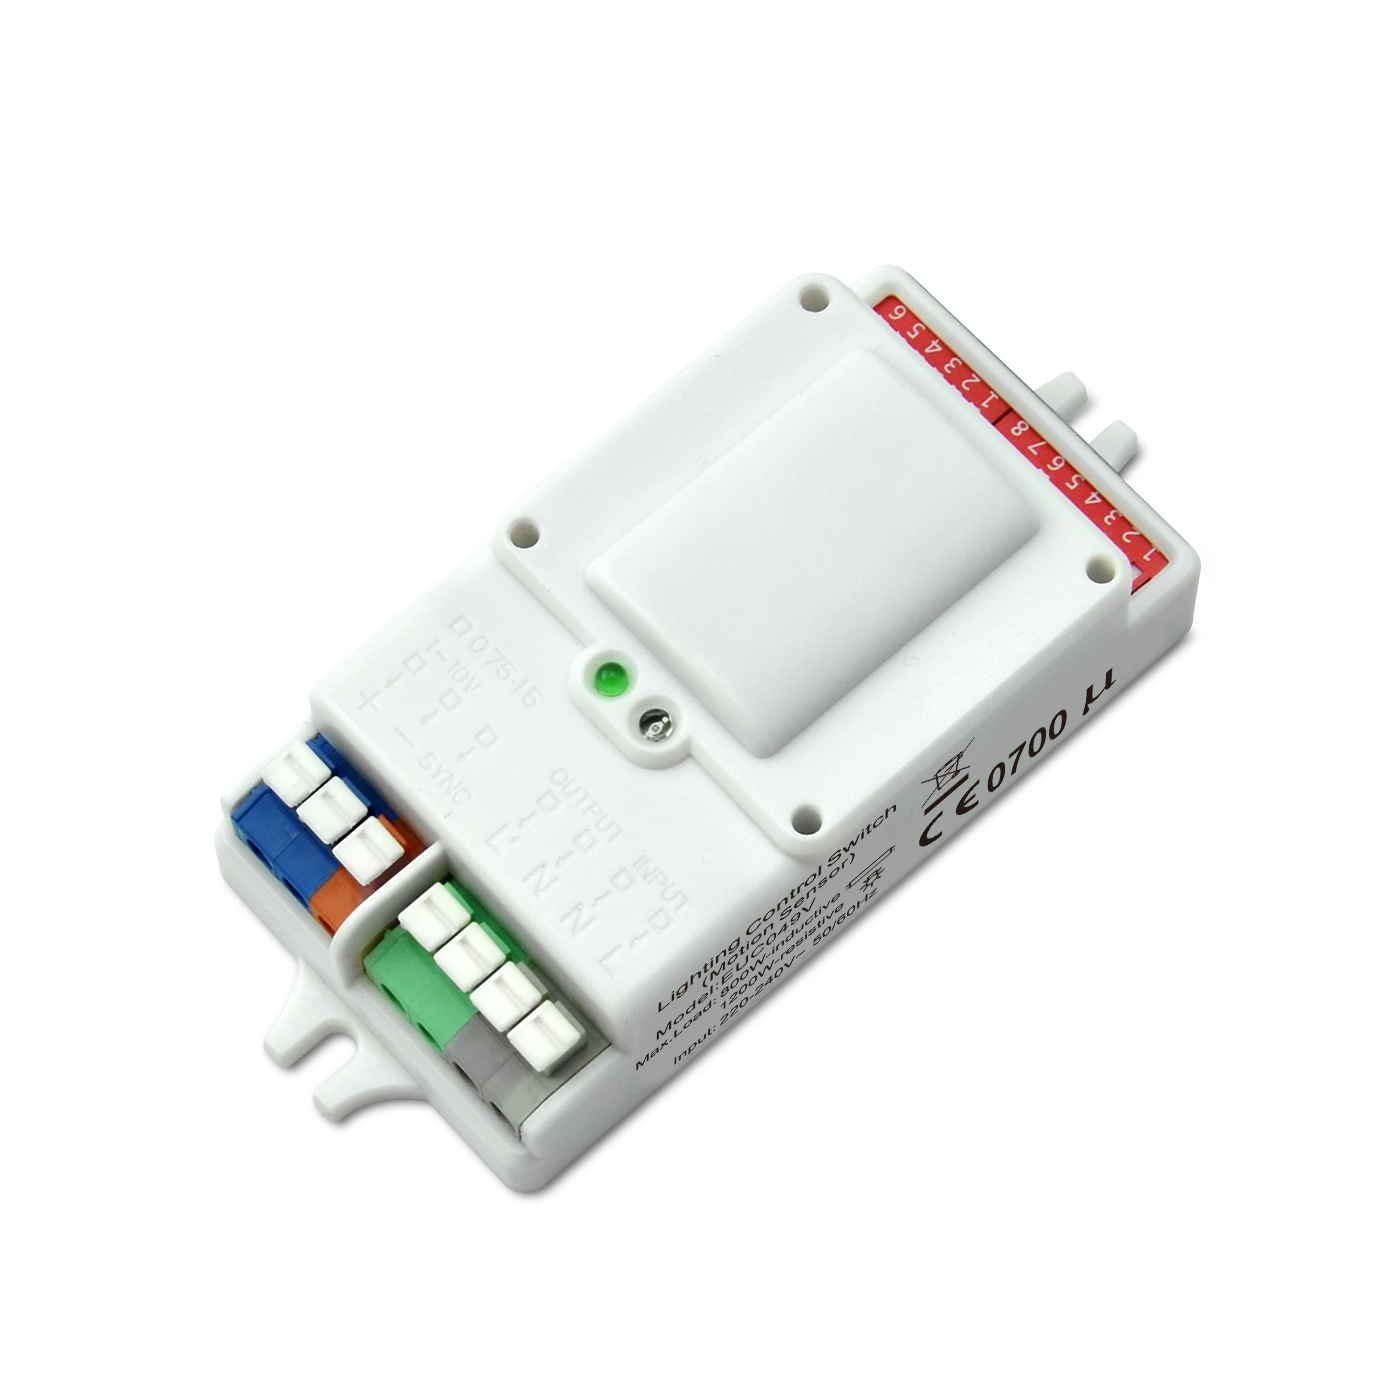 OEM Customized Light Dimmer Controller - 220-240VAC 1-10V Dimming Motion Sensor – Euchips Featured Image